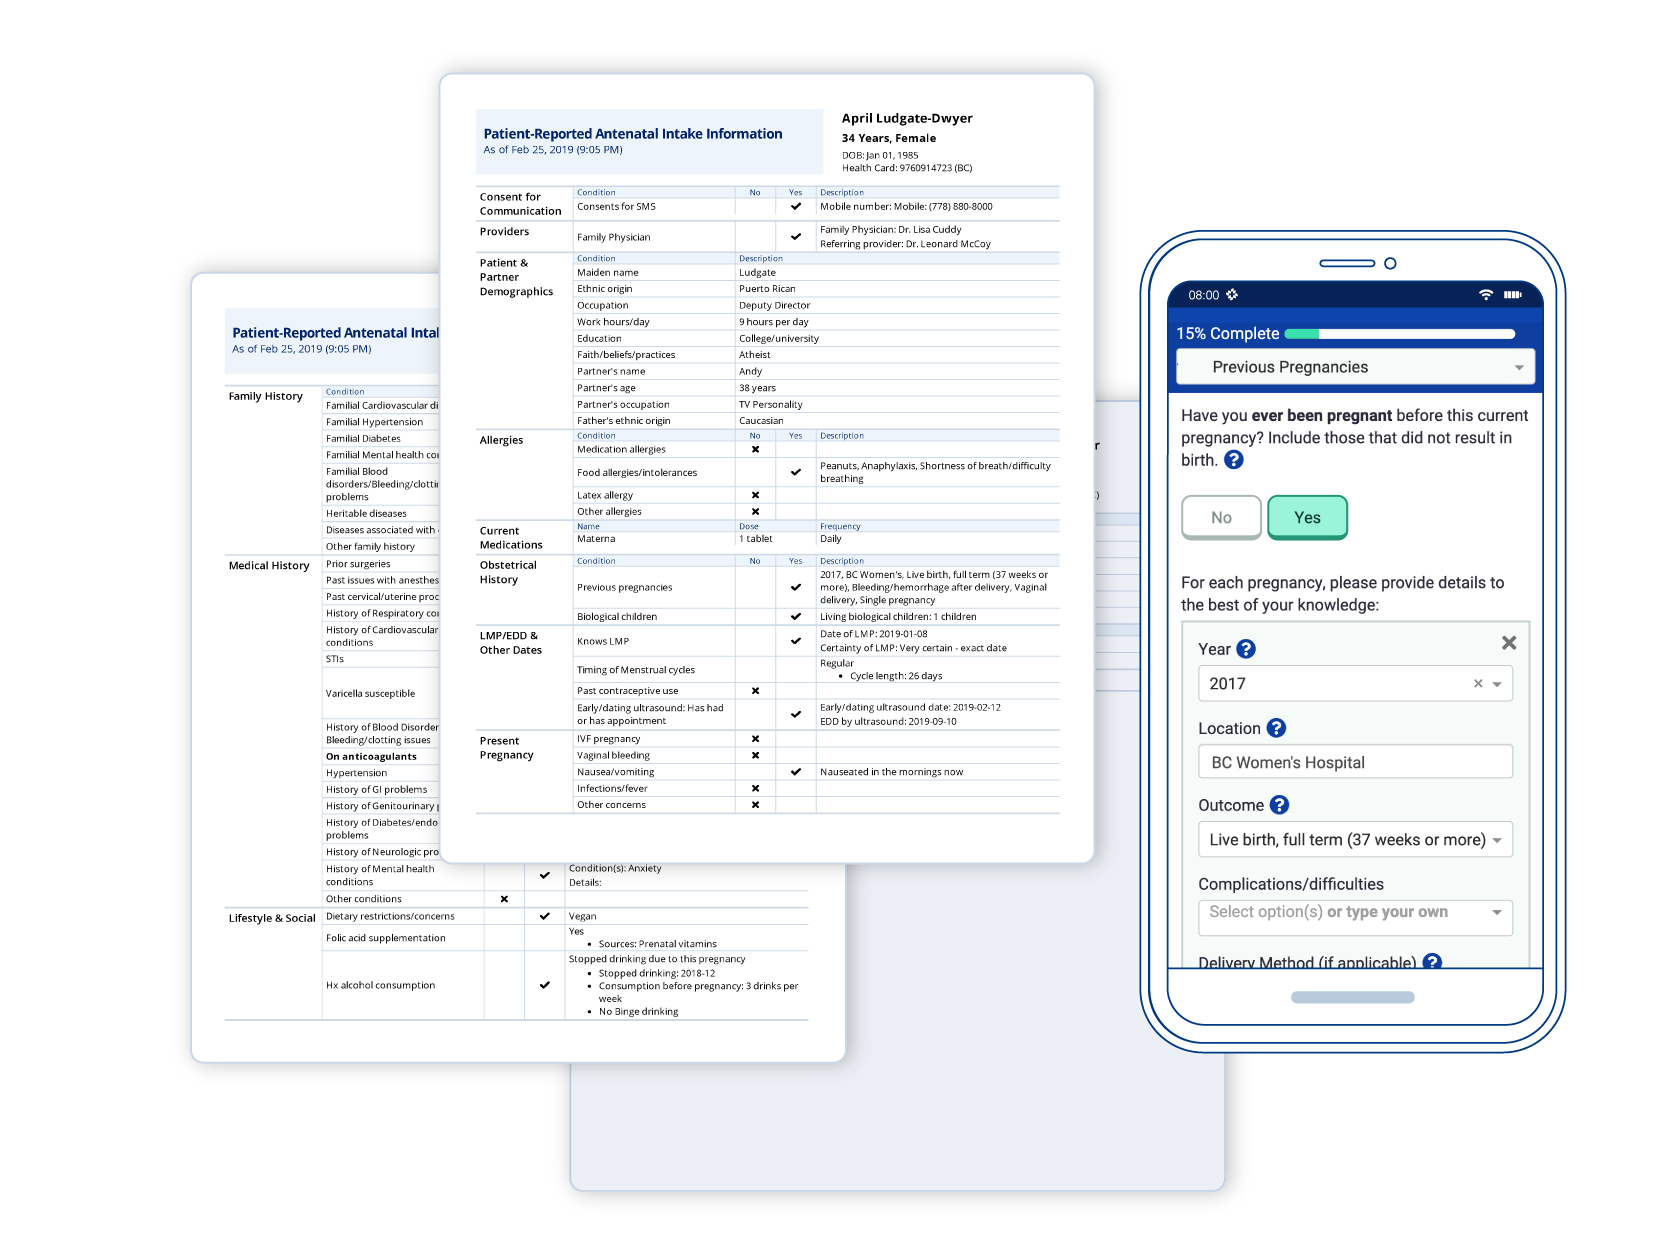 Easy access - Patients see simple, straightforward questionnaires accessible on mobile. You see a clear and concise summary and can manage care efficiently from your worklist.